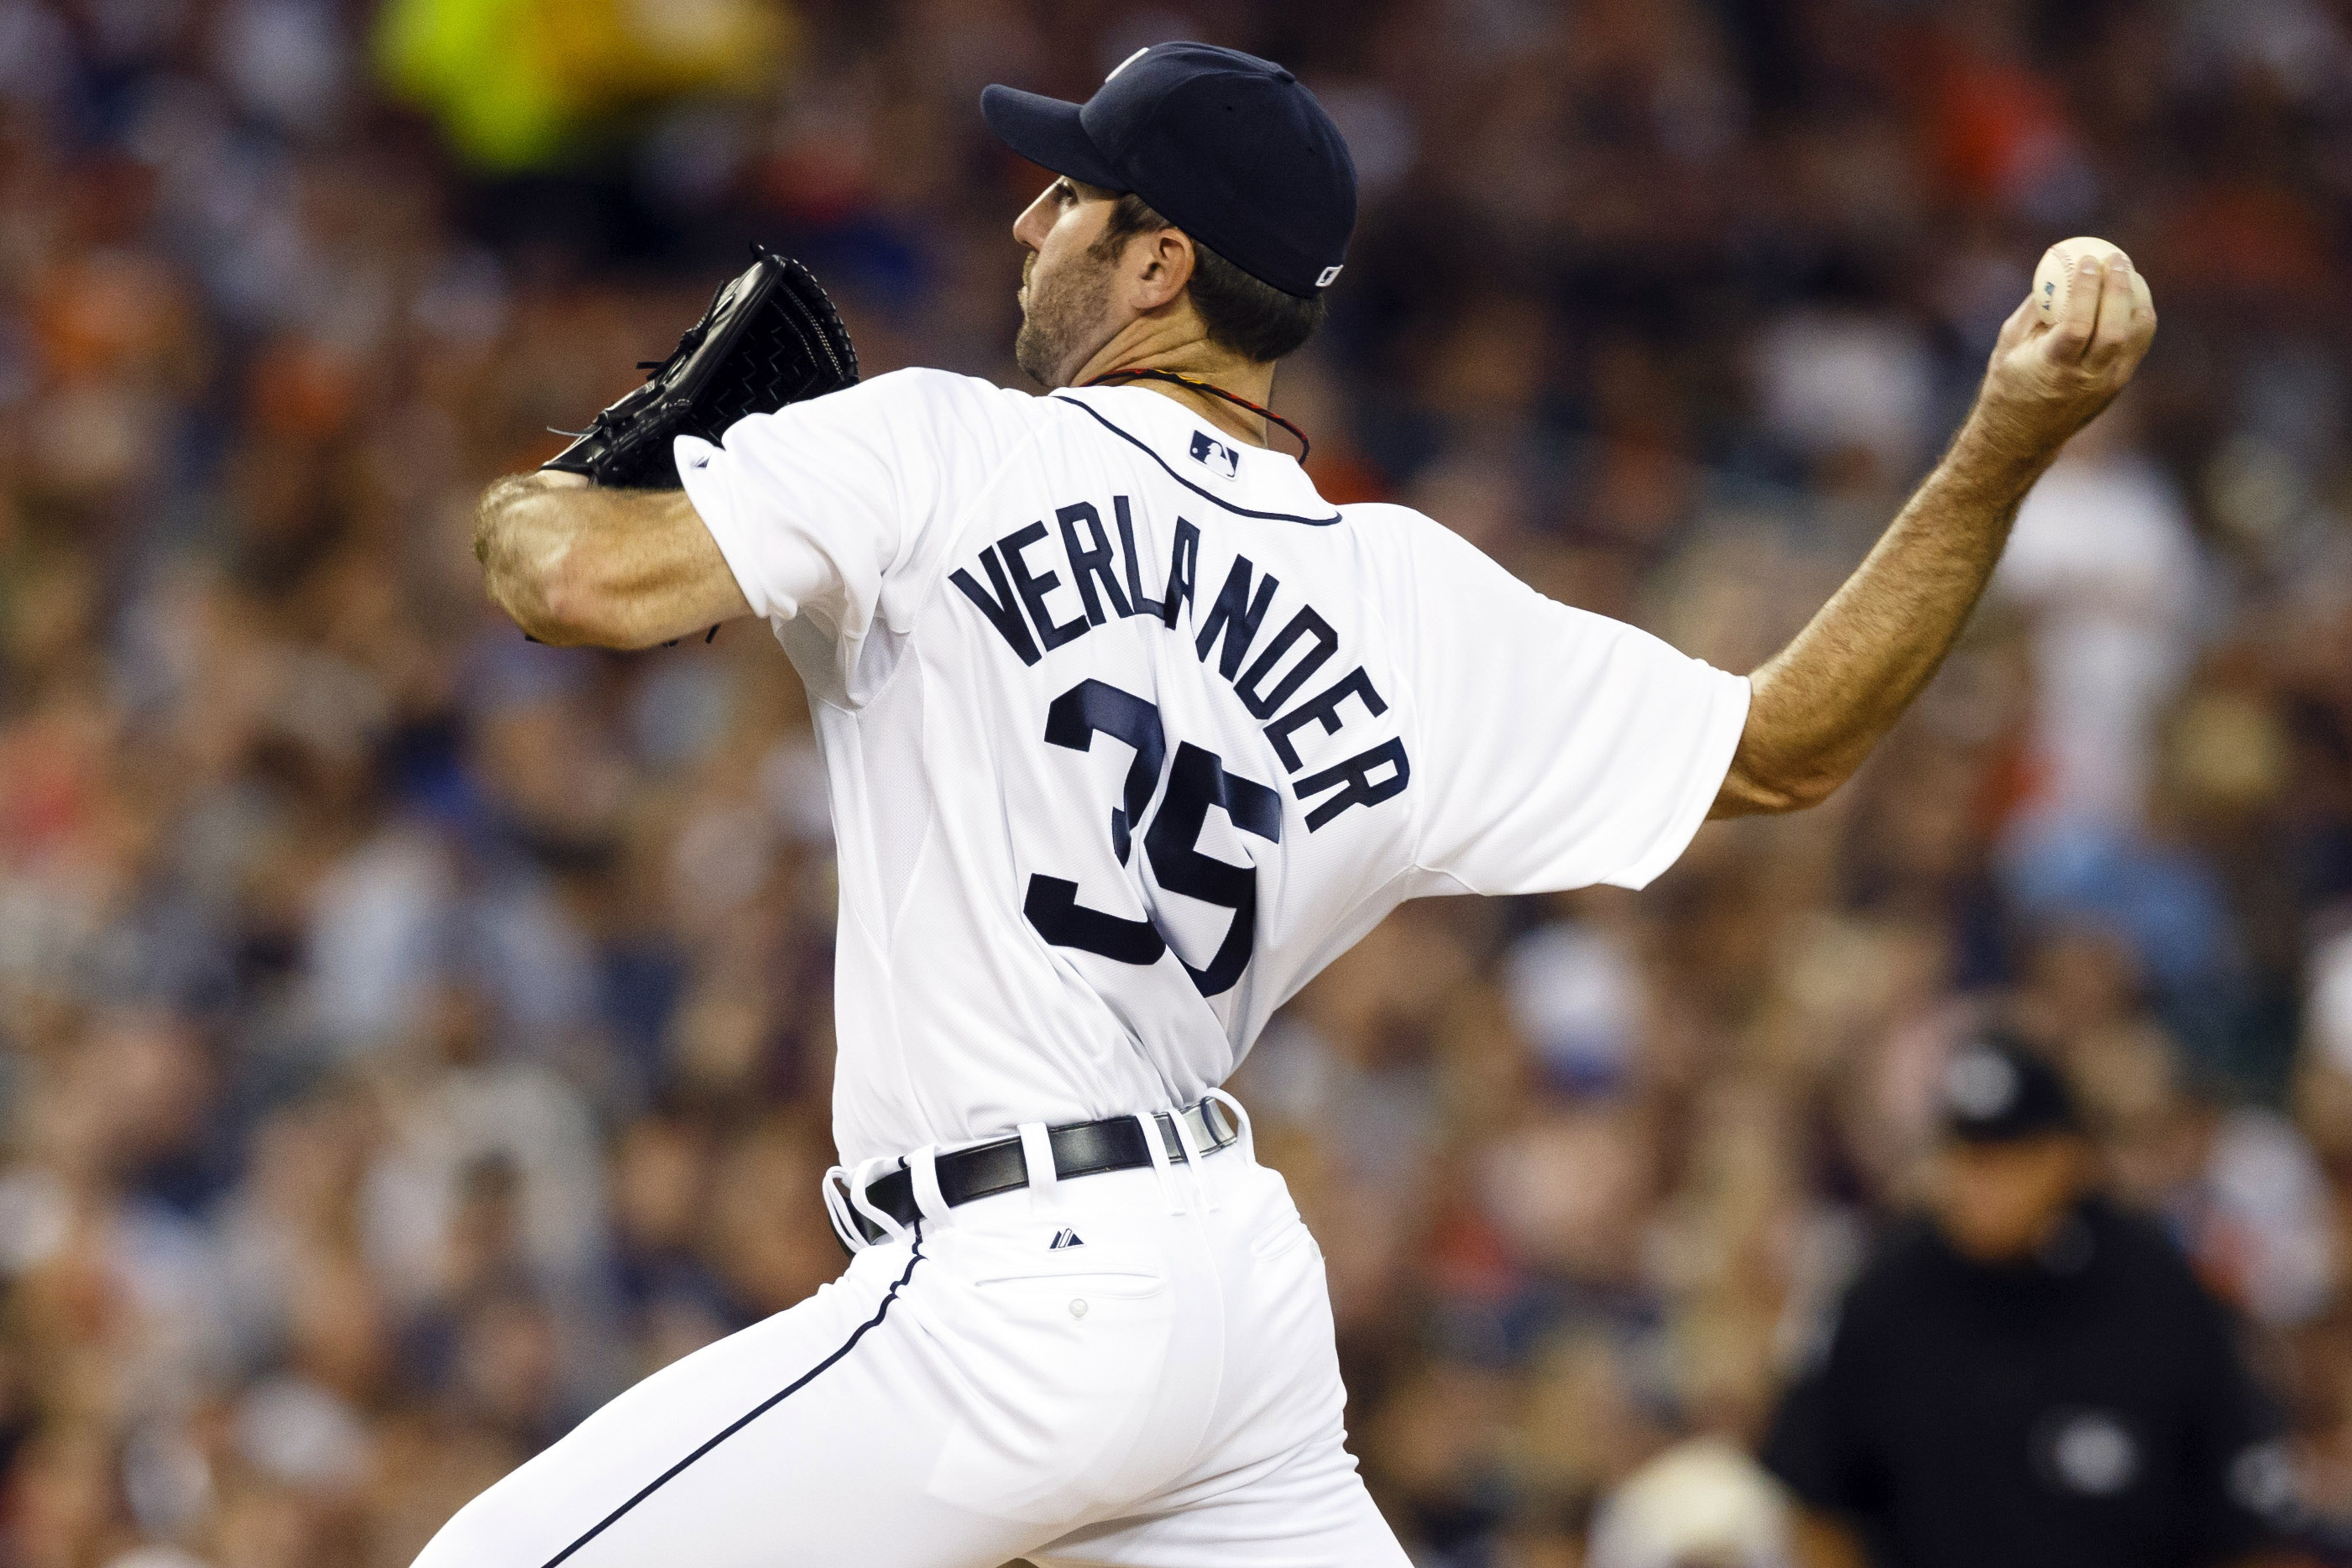 September 2, 2012; Detroit, MI, USA; Detroit Tigers starting pitcher Justin Verlander (35) pitches during the first inning against the Chicago White Sox at Comerica Park. Mandatory Credit: Rick Osentoski-US PRESSWIRE